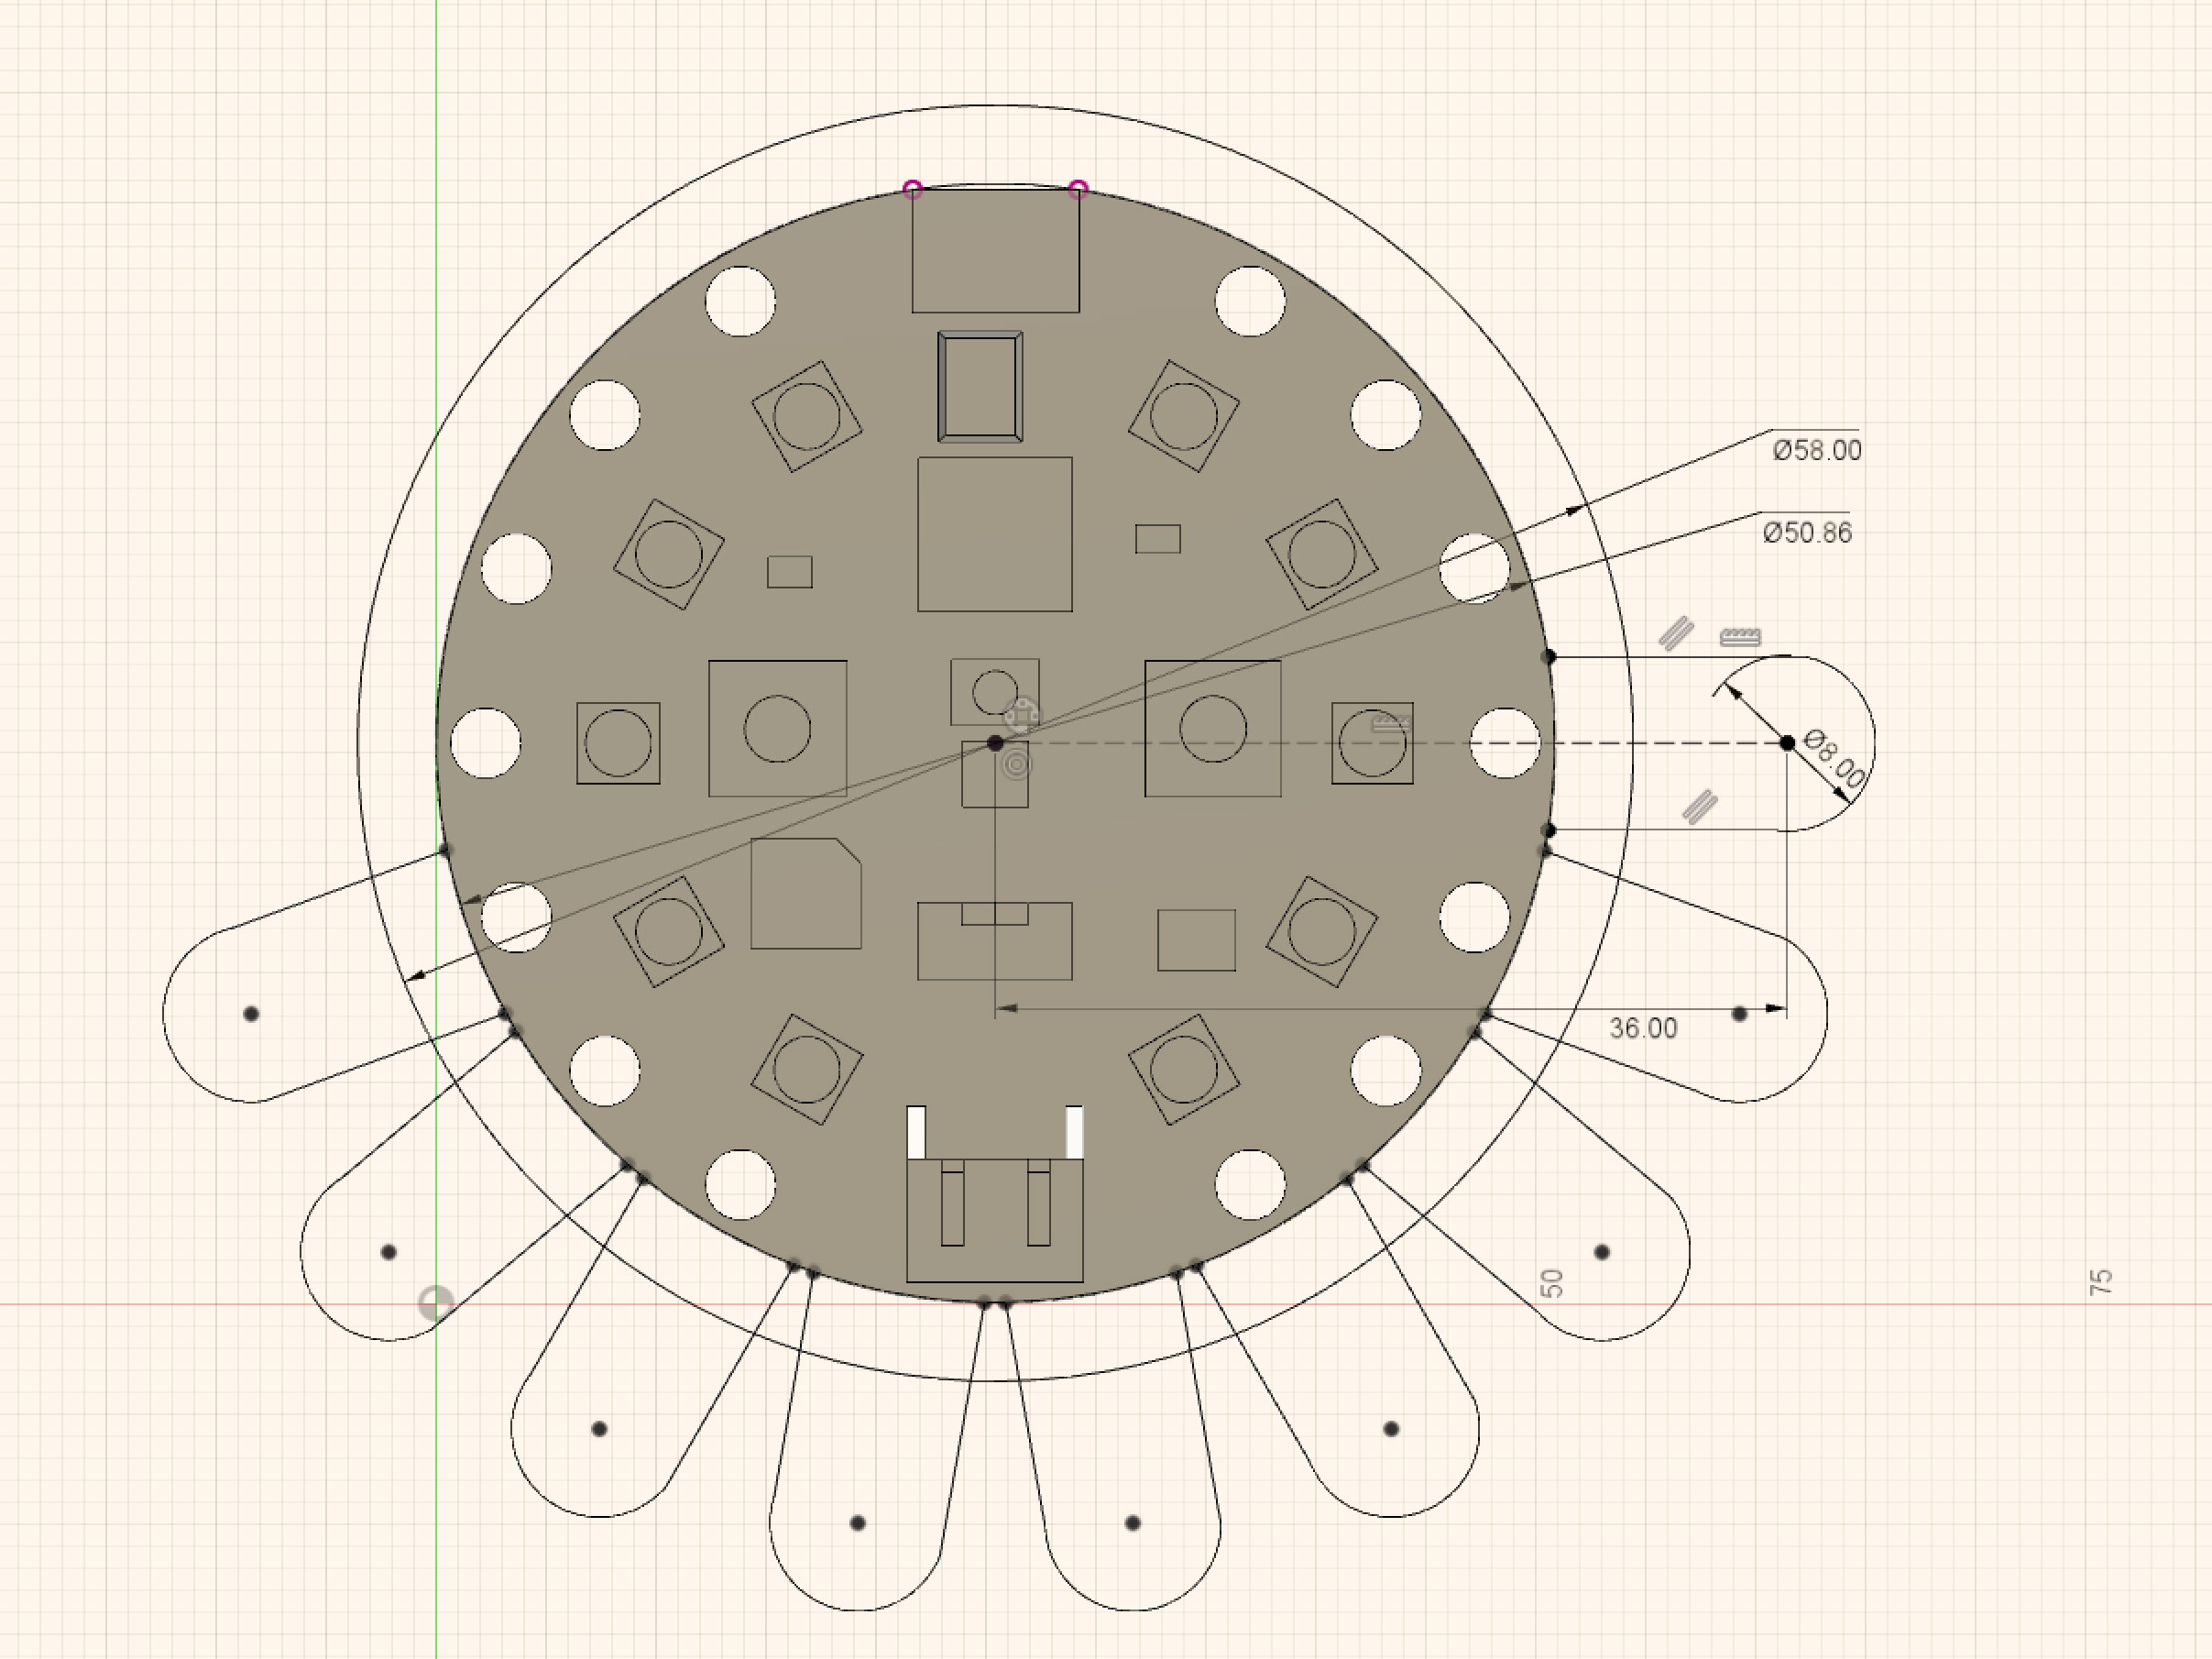 The outline of the custom PCB is designed in Fusion 360 using the spline tool.